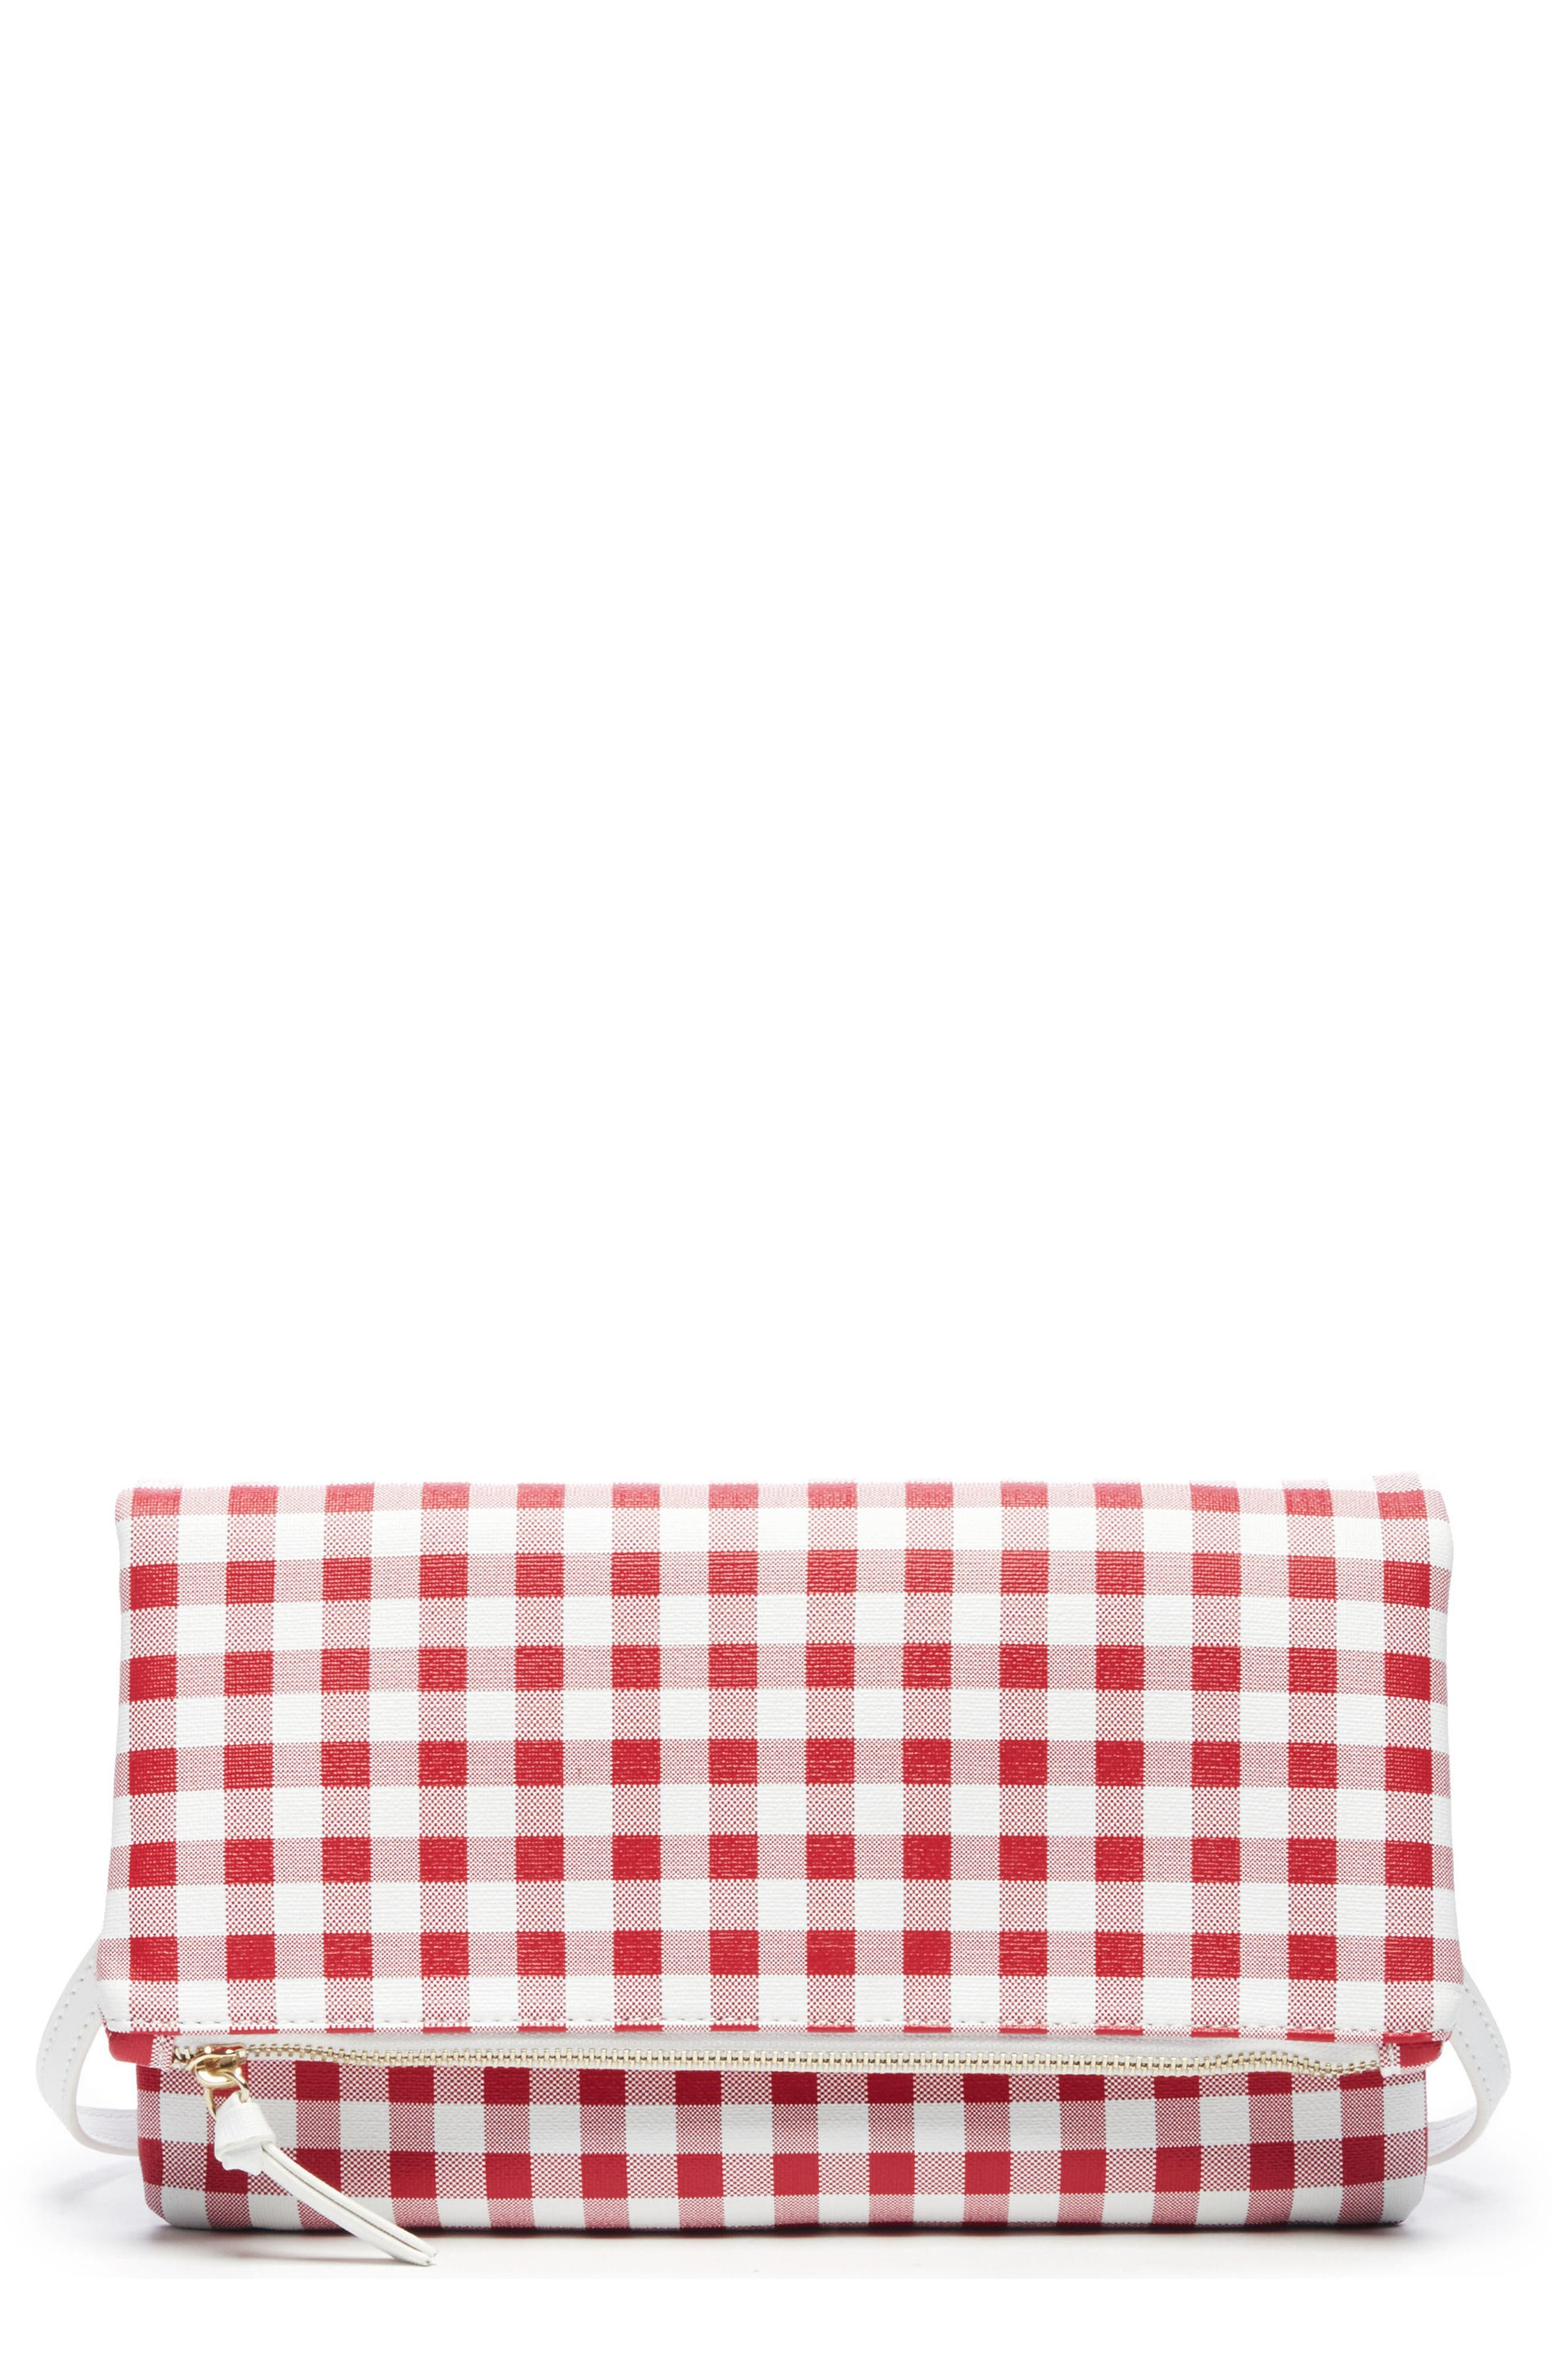 Faux Leather Foldover Clutch,                             Main thumbnail 1, color,                             Red/ White